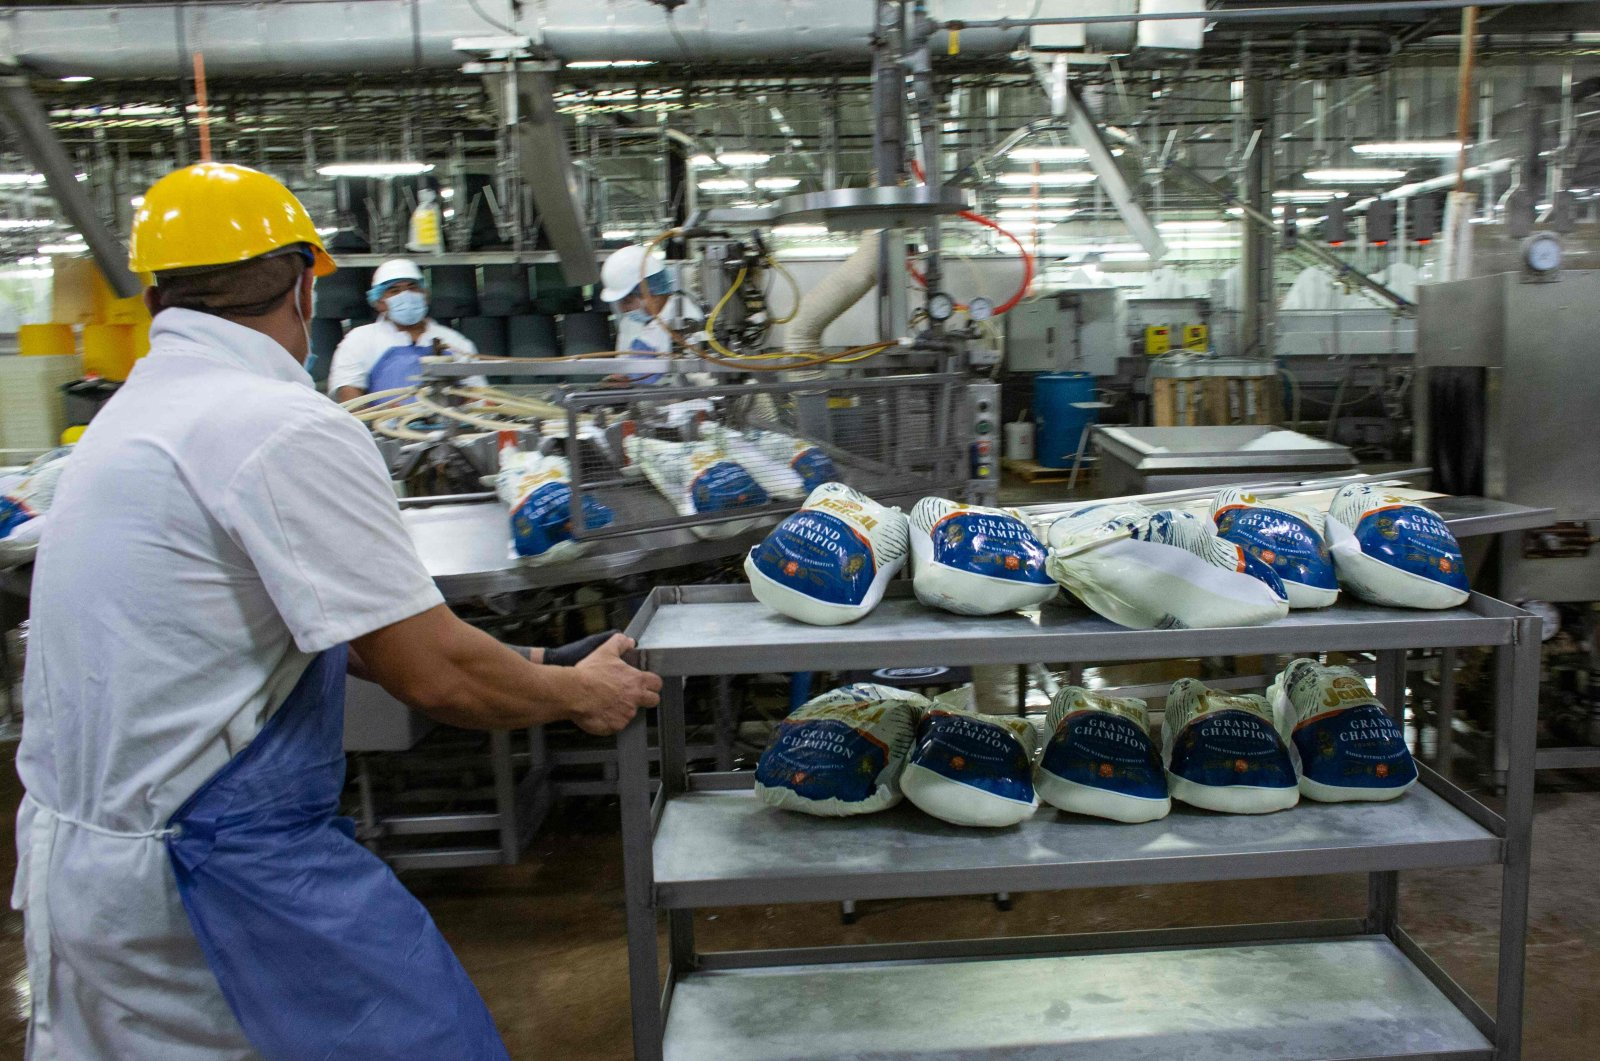 In this file photo taken on November 20, 2020, workers pack turkeys at a farm in Orefield, Pennsylvania, ahead of the Thanksgiving holiday. (AFP Photo)